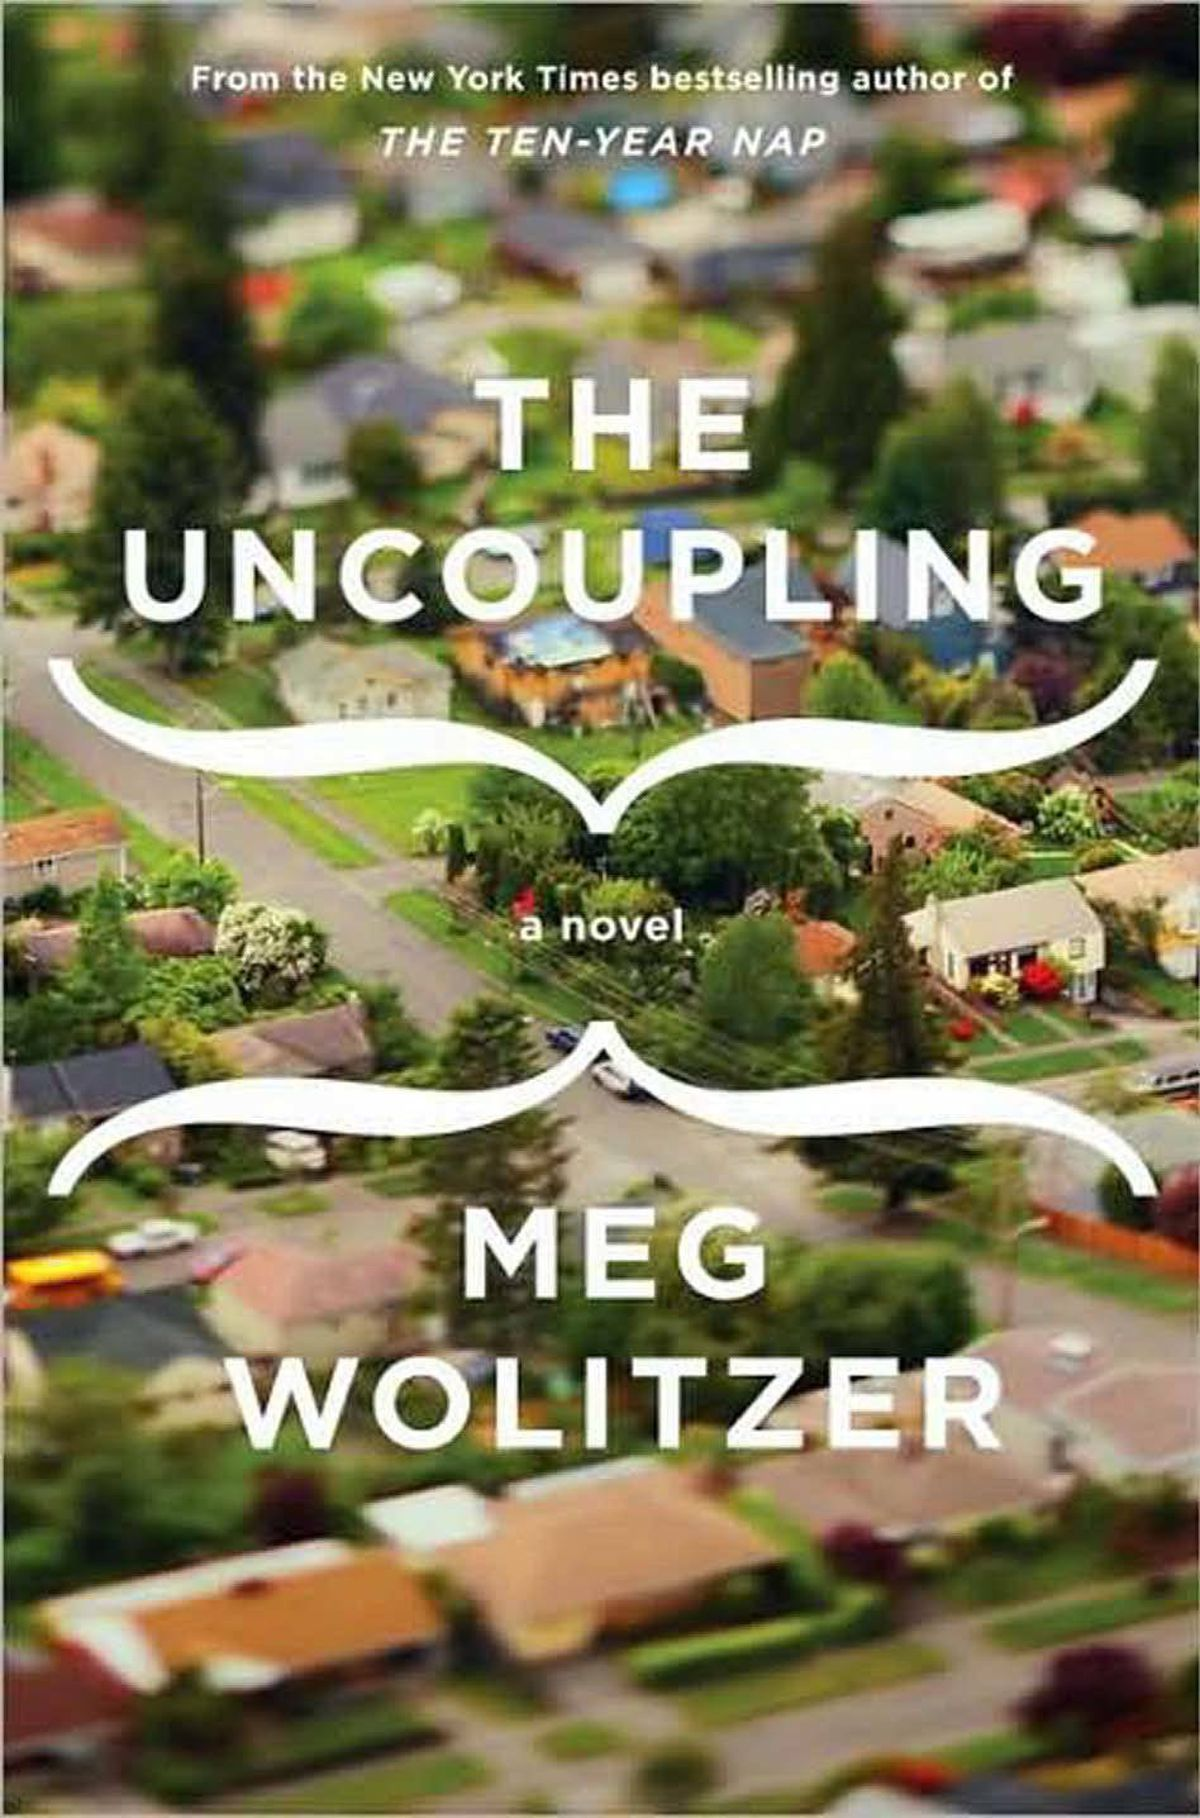 THE UNCOUPLING By Meg Wolitzer (Riverhead) The Uncoupling – in which a student production of Aristophanes's Lysistrata sparks a sex strike among the suburb's women – is a smart, tender and utterly hilarious look at the fragility of desire, and the pain that so often attends its disappearance. – Cynthia Macdonald